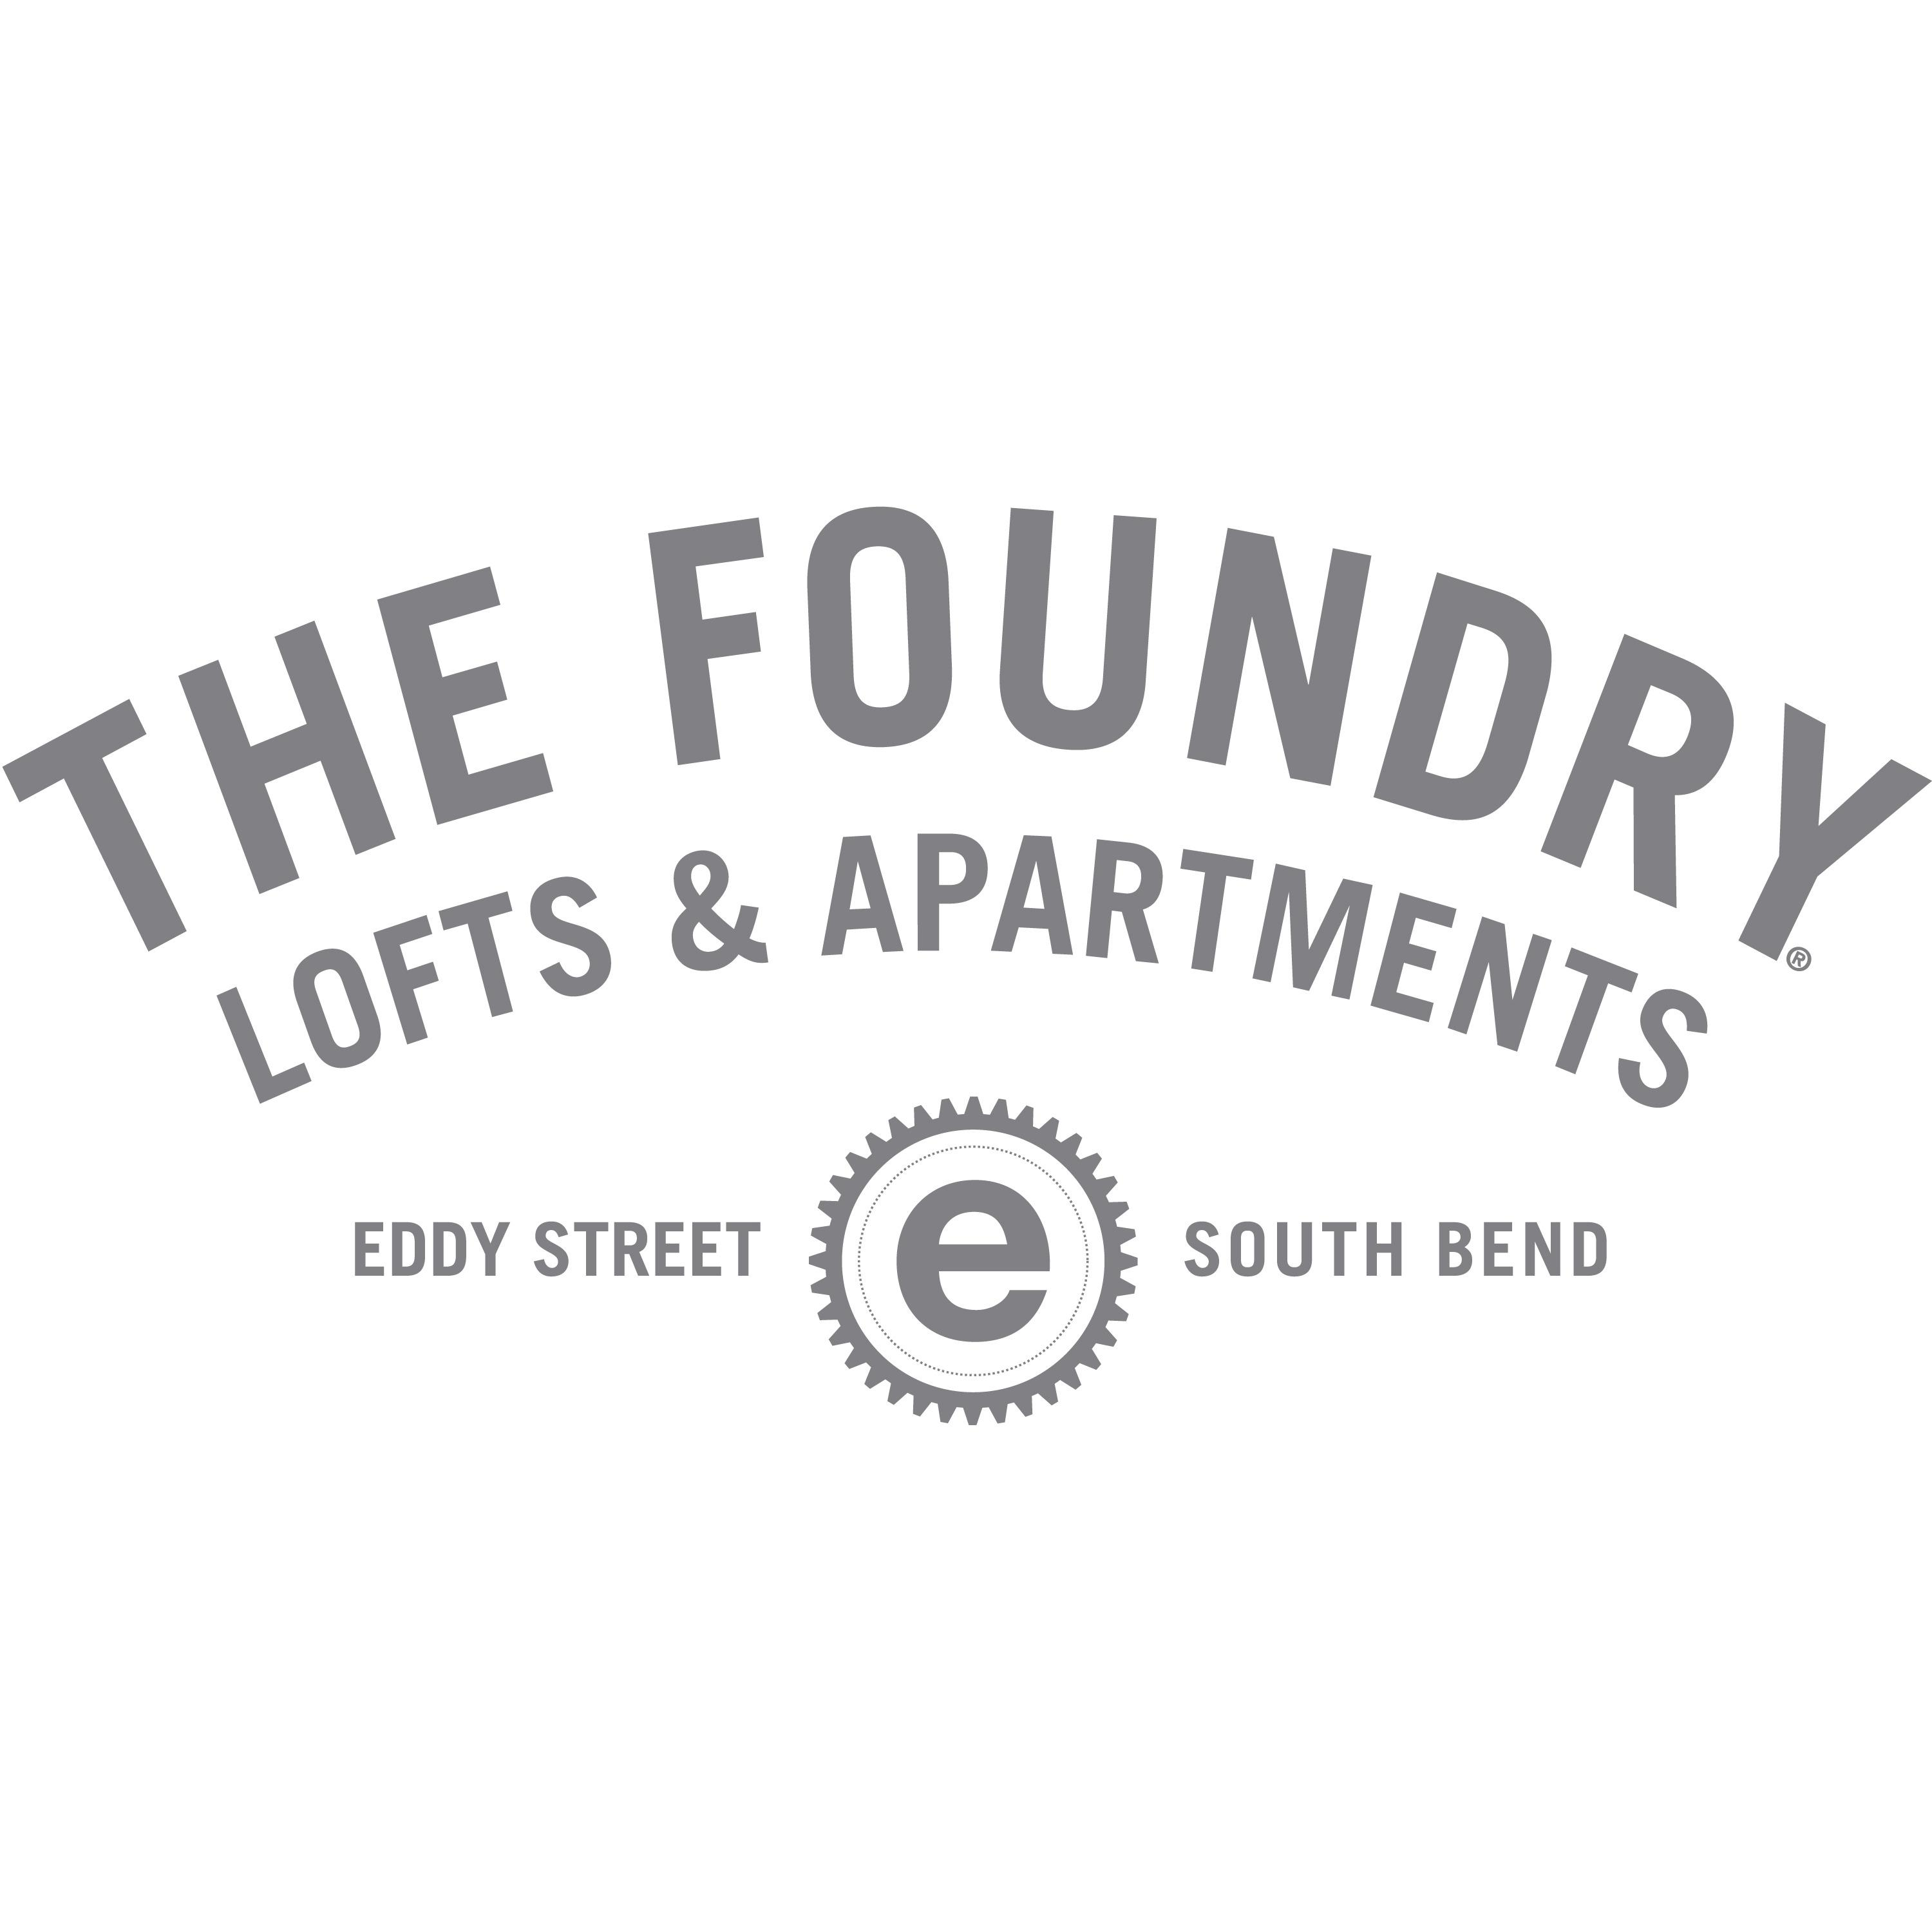 The Foundry Lofts & Apartments